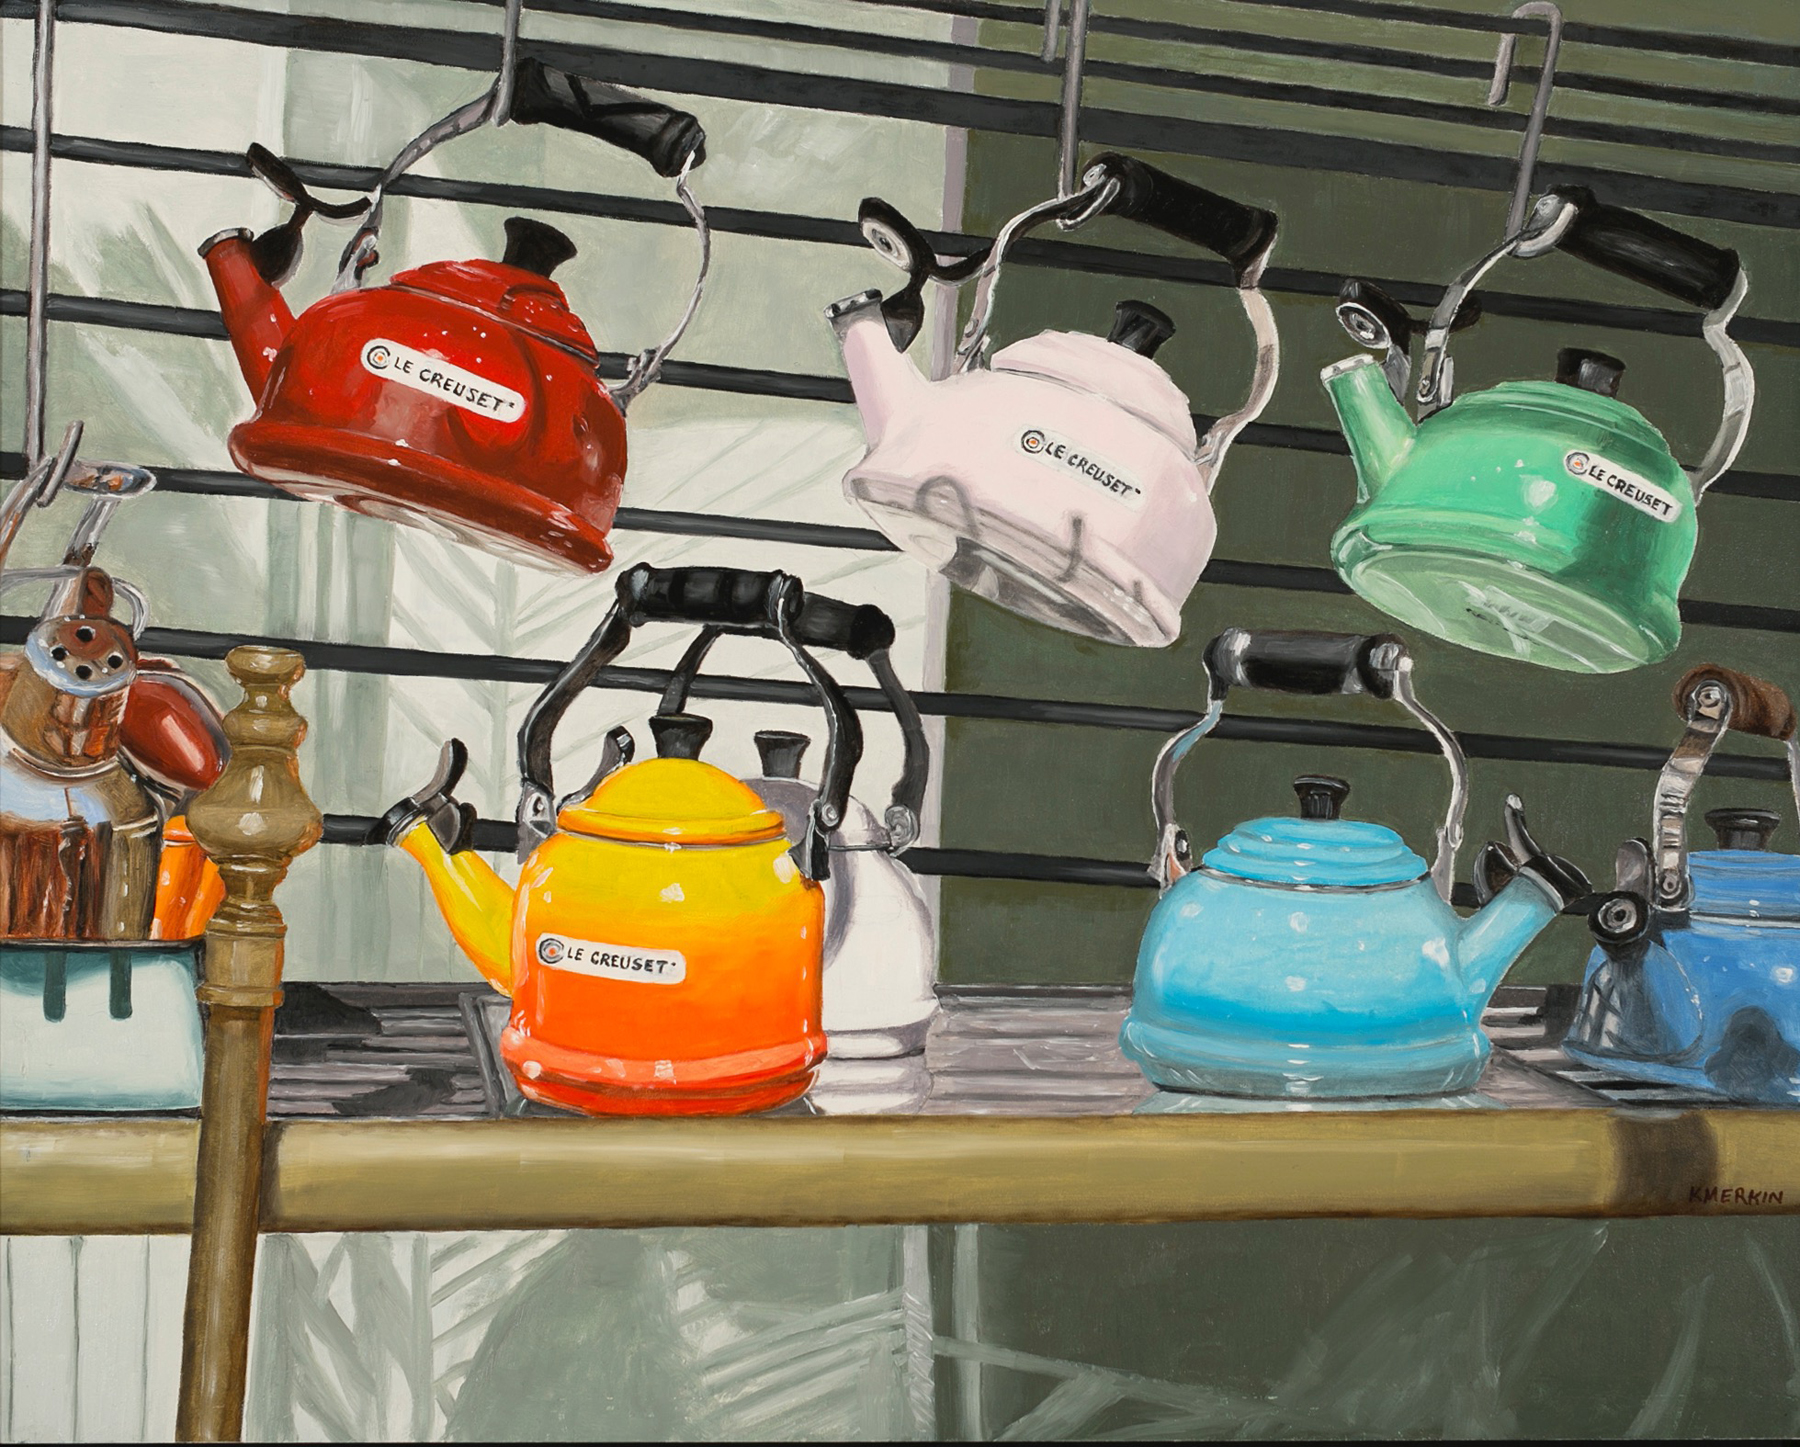 Photo-realistic image in oils of teapots in store window display